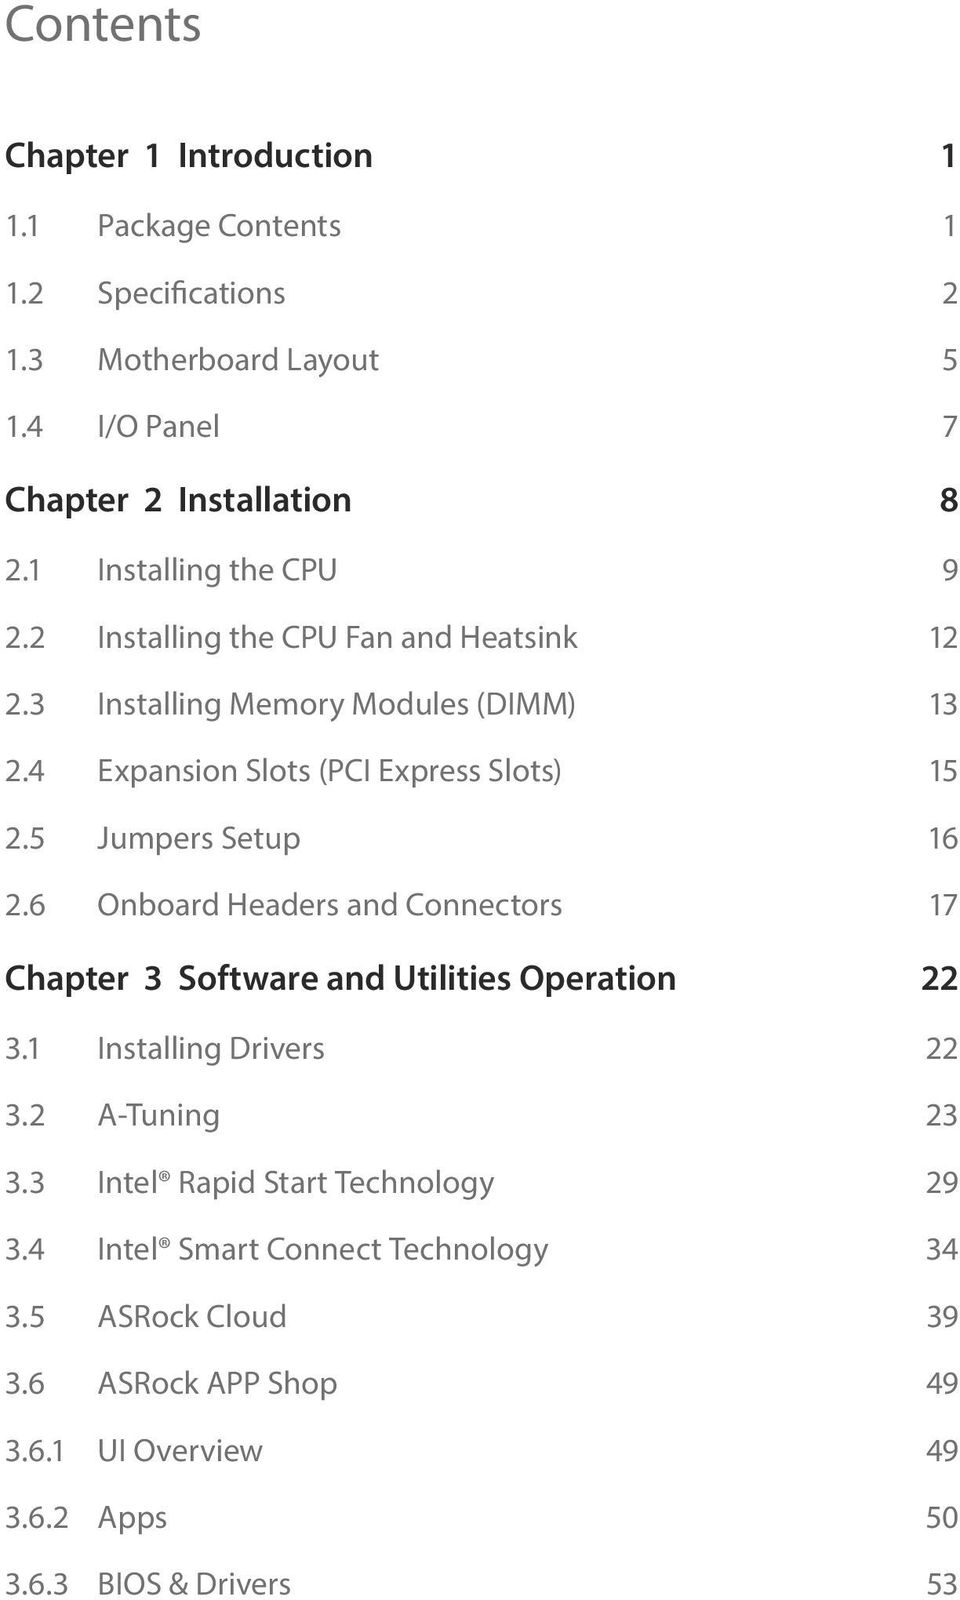 5 Jumpers Setup 16 2.6 Onboard Headers and Connectors 17 Chapter 3 Software and Utilities Operation 22 3.1 Installing Drivers 22 3.2 A-Tuning 23 3.